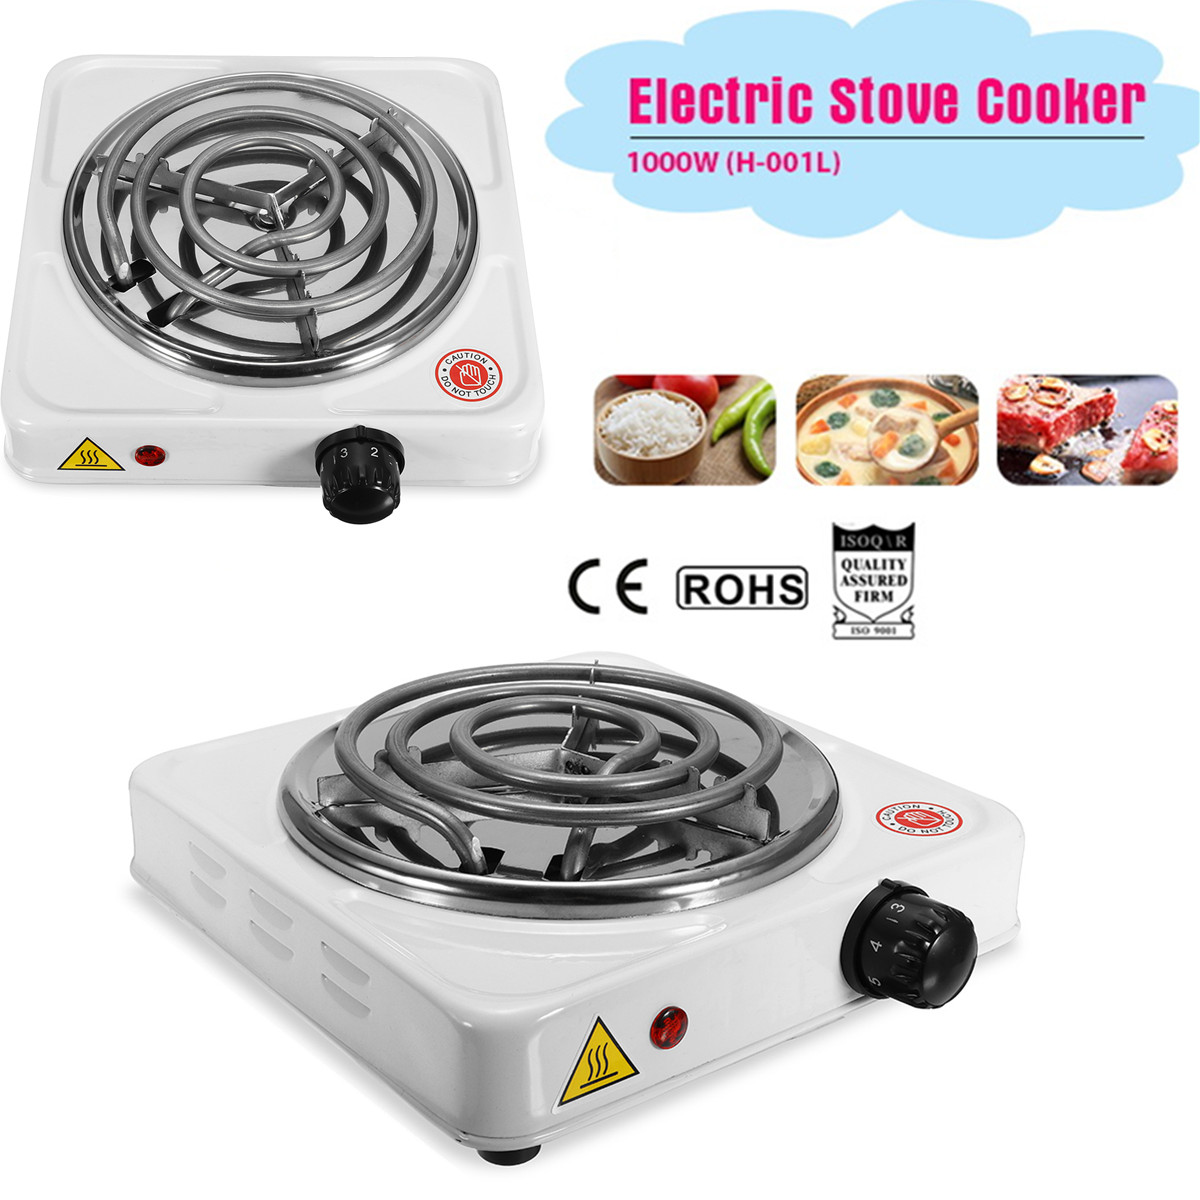 110-240V 1000W Iron Burner Electric Stove Hot Plate Portable Kitchen Cooker Coffee Heater Milk Soup Durable Asjustable Quick